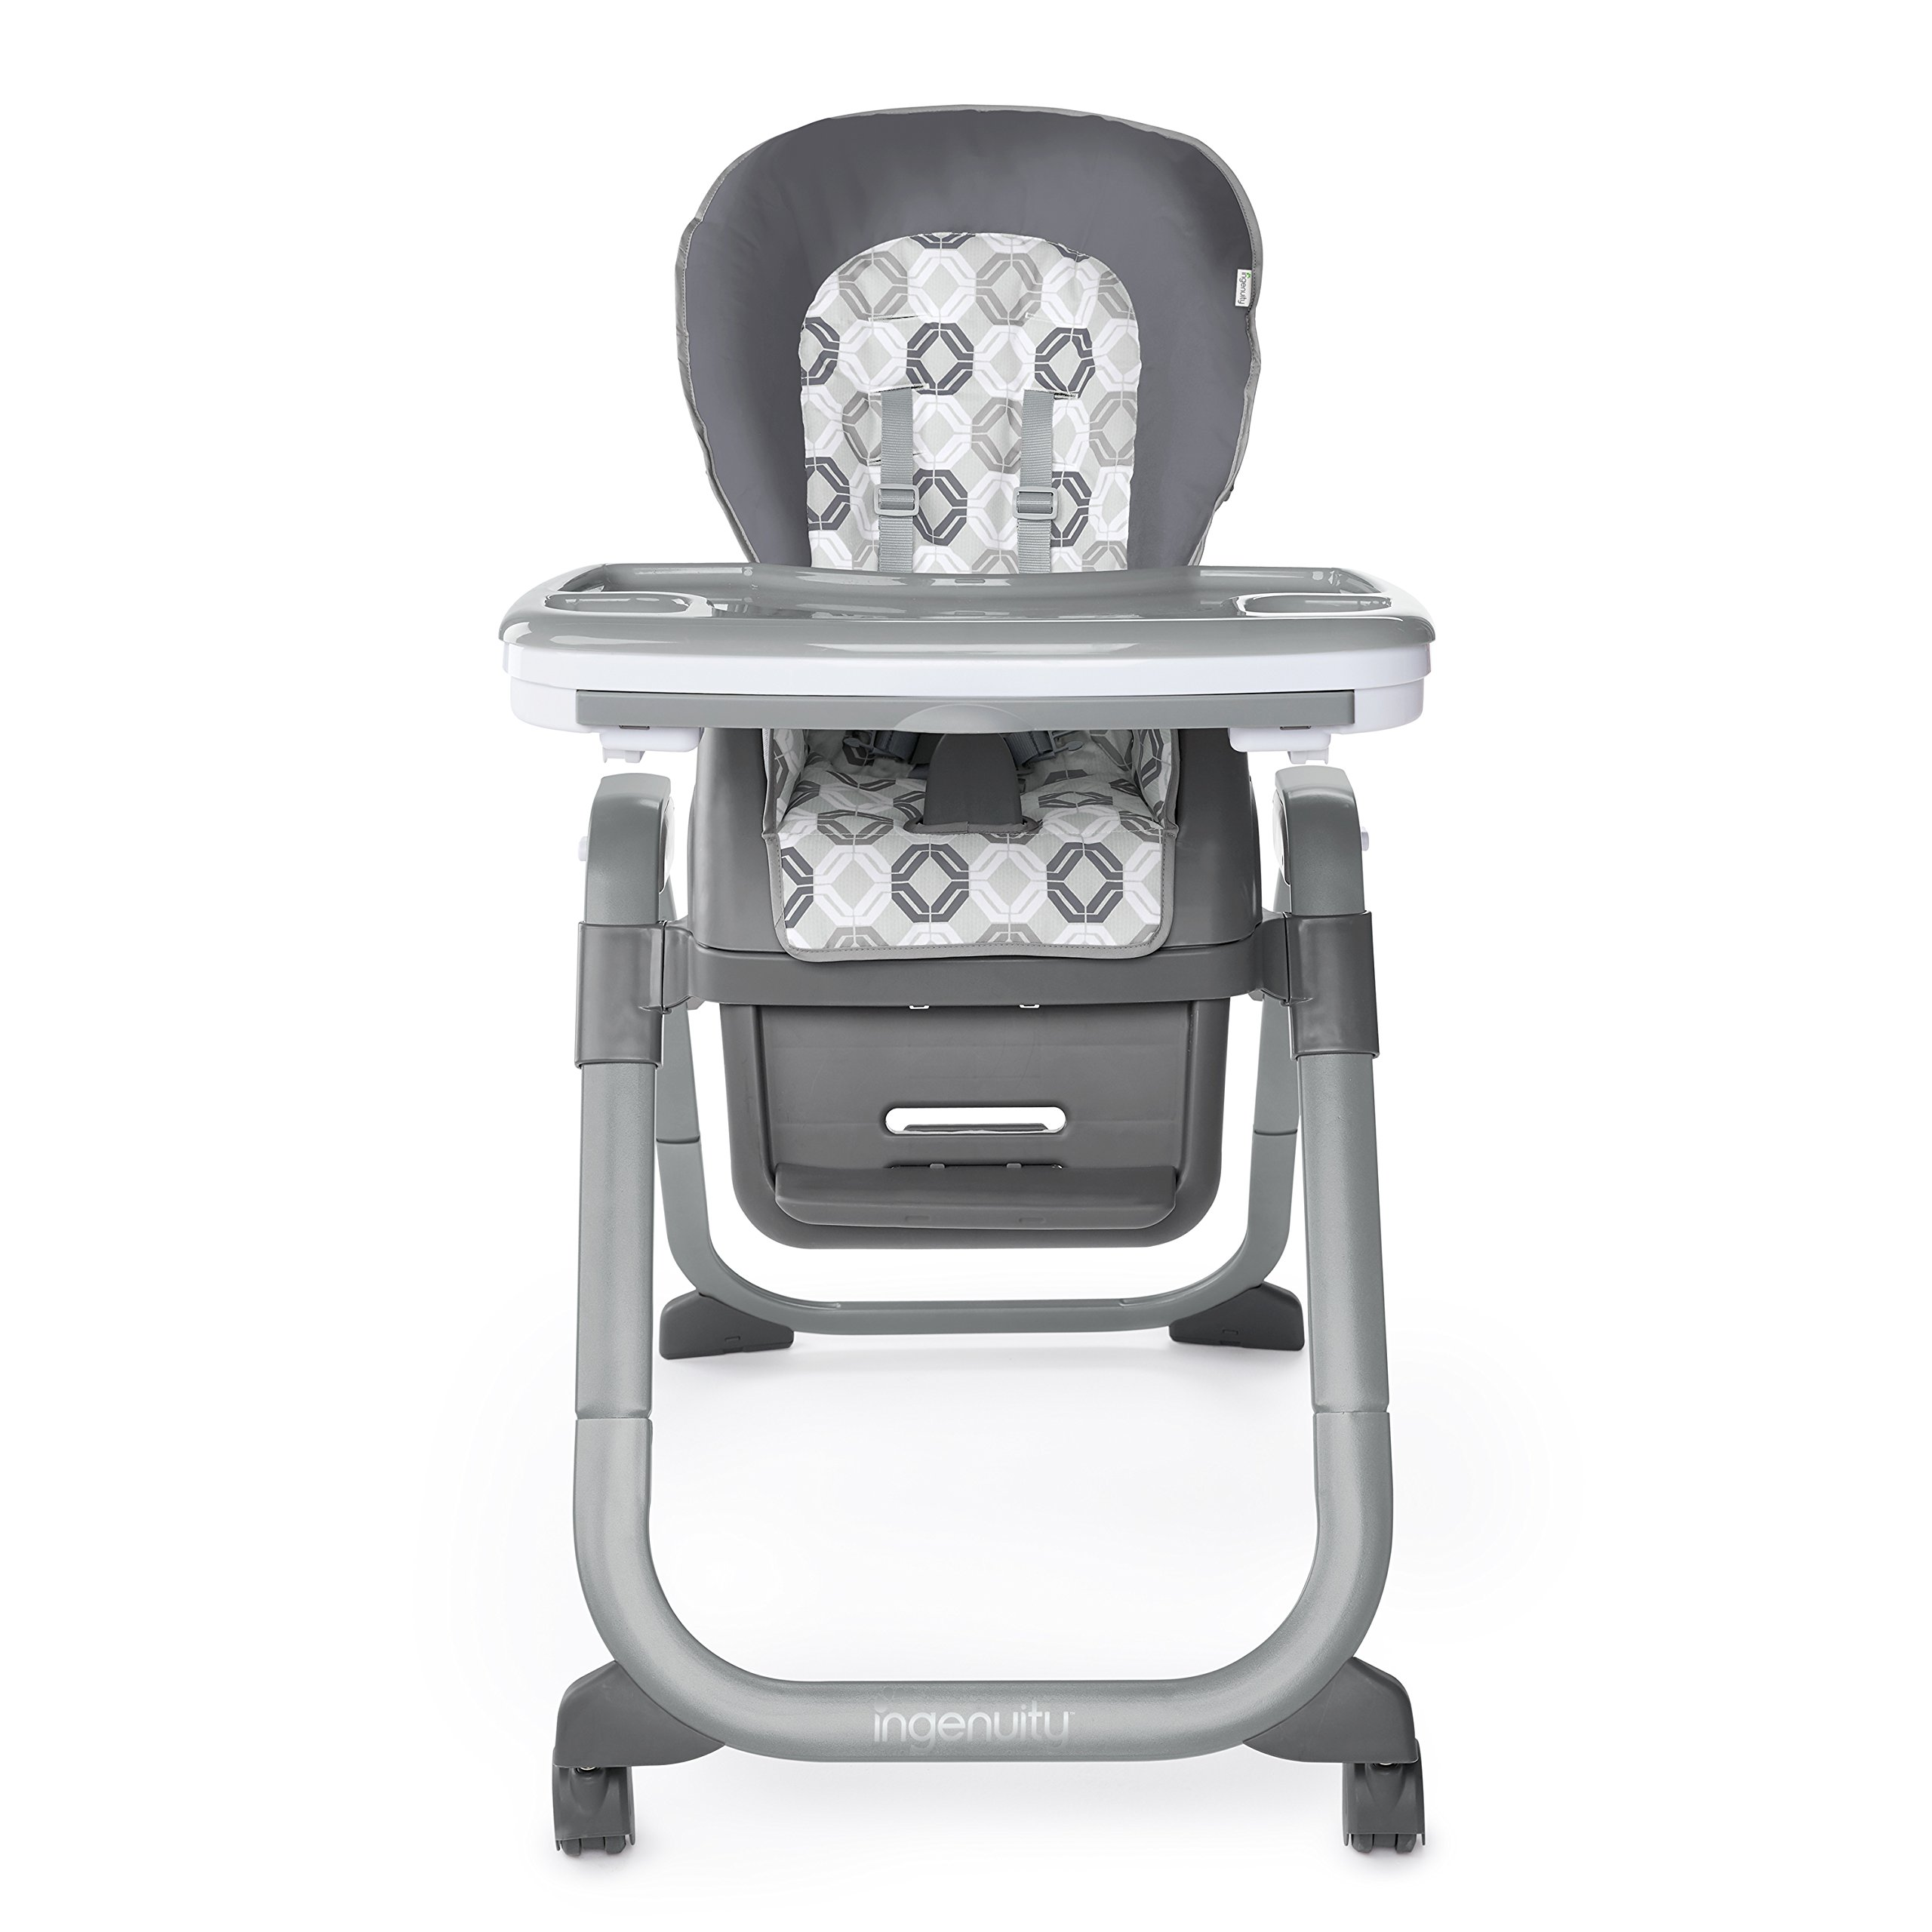 Ingenuity SmartServe 4-in-1 High Chair with Swing Out Tray - Clayton - High Chair, Toddler Chair, and Booster by Ingenuity (Image #1)